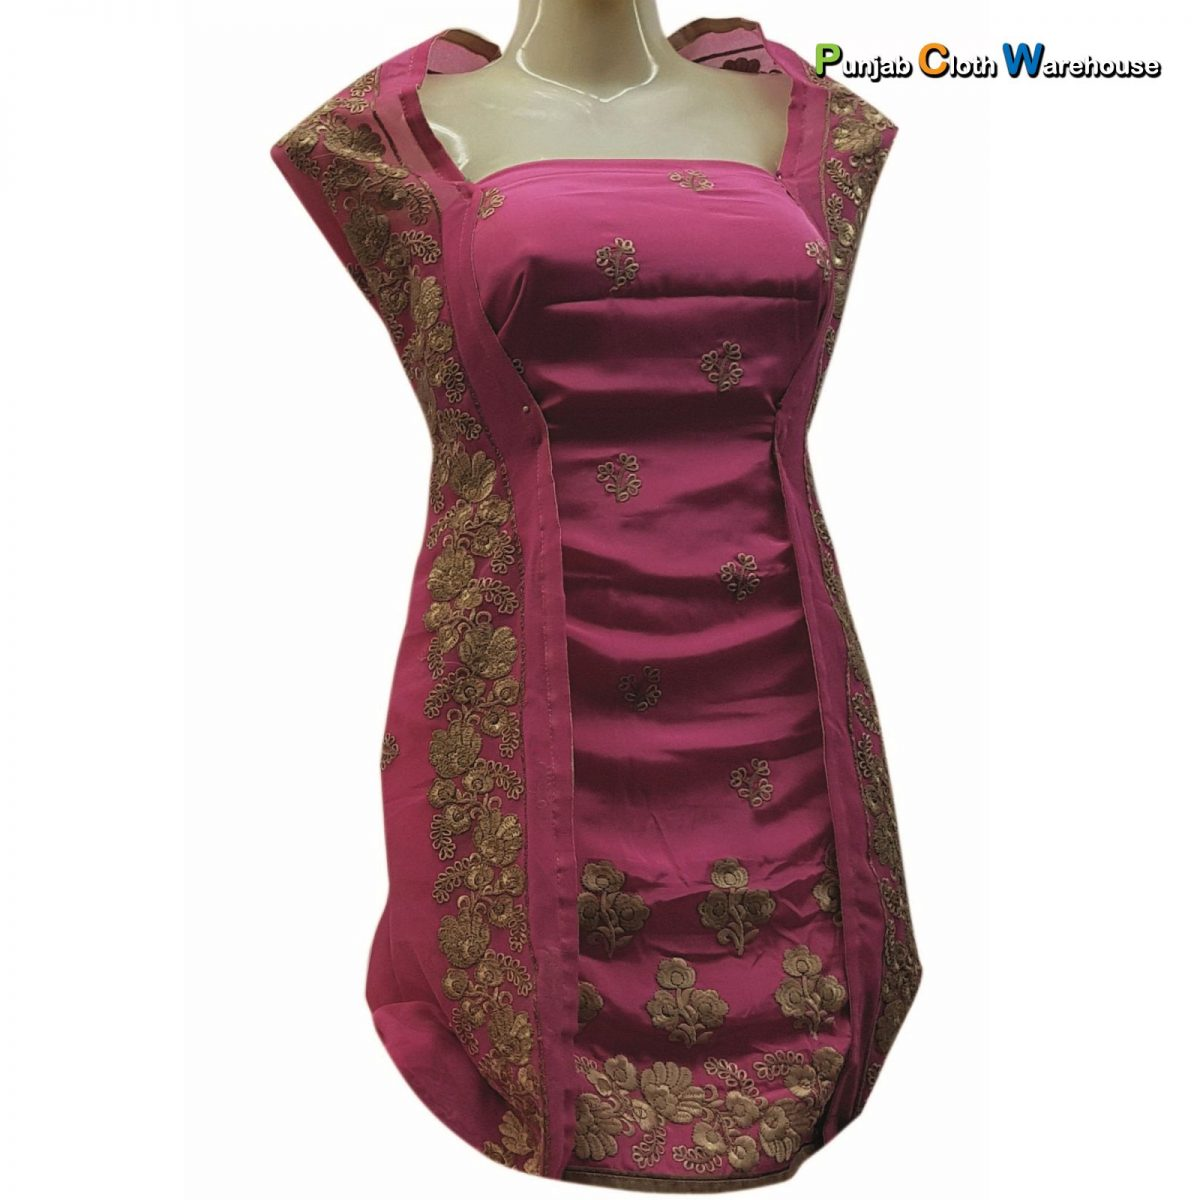 Ladies Suits - Cut Piece - Punjab Cloth Warehouse, Surrey (1)